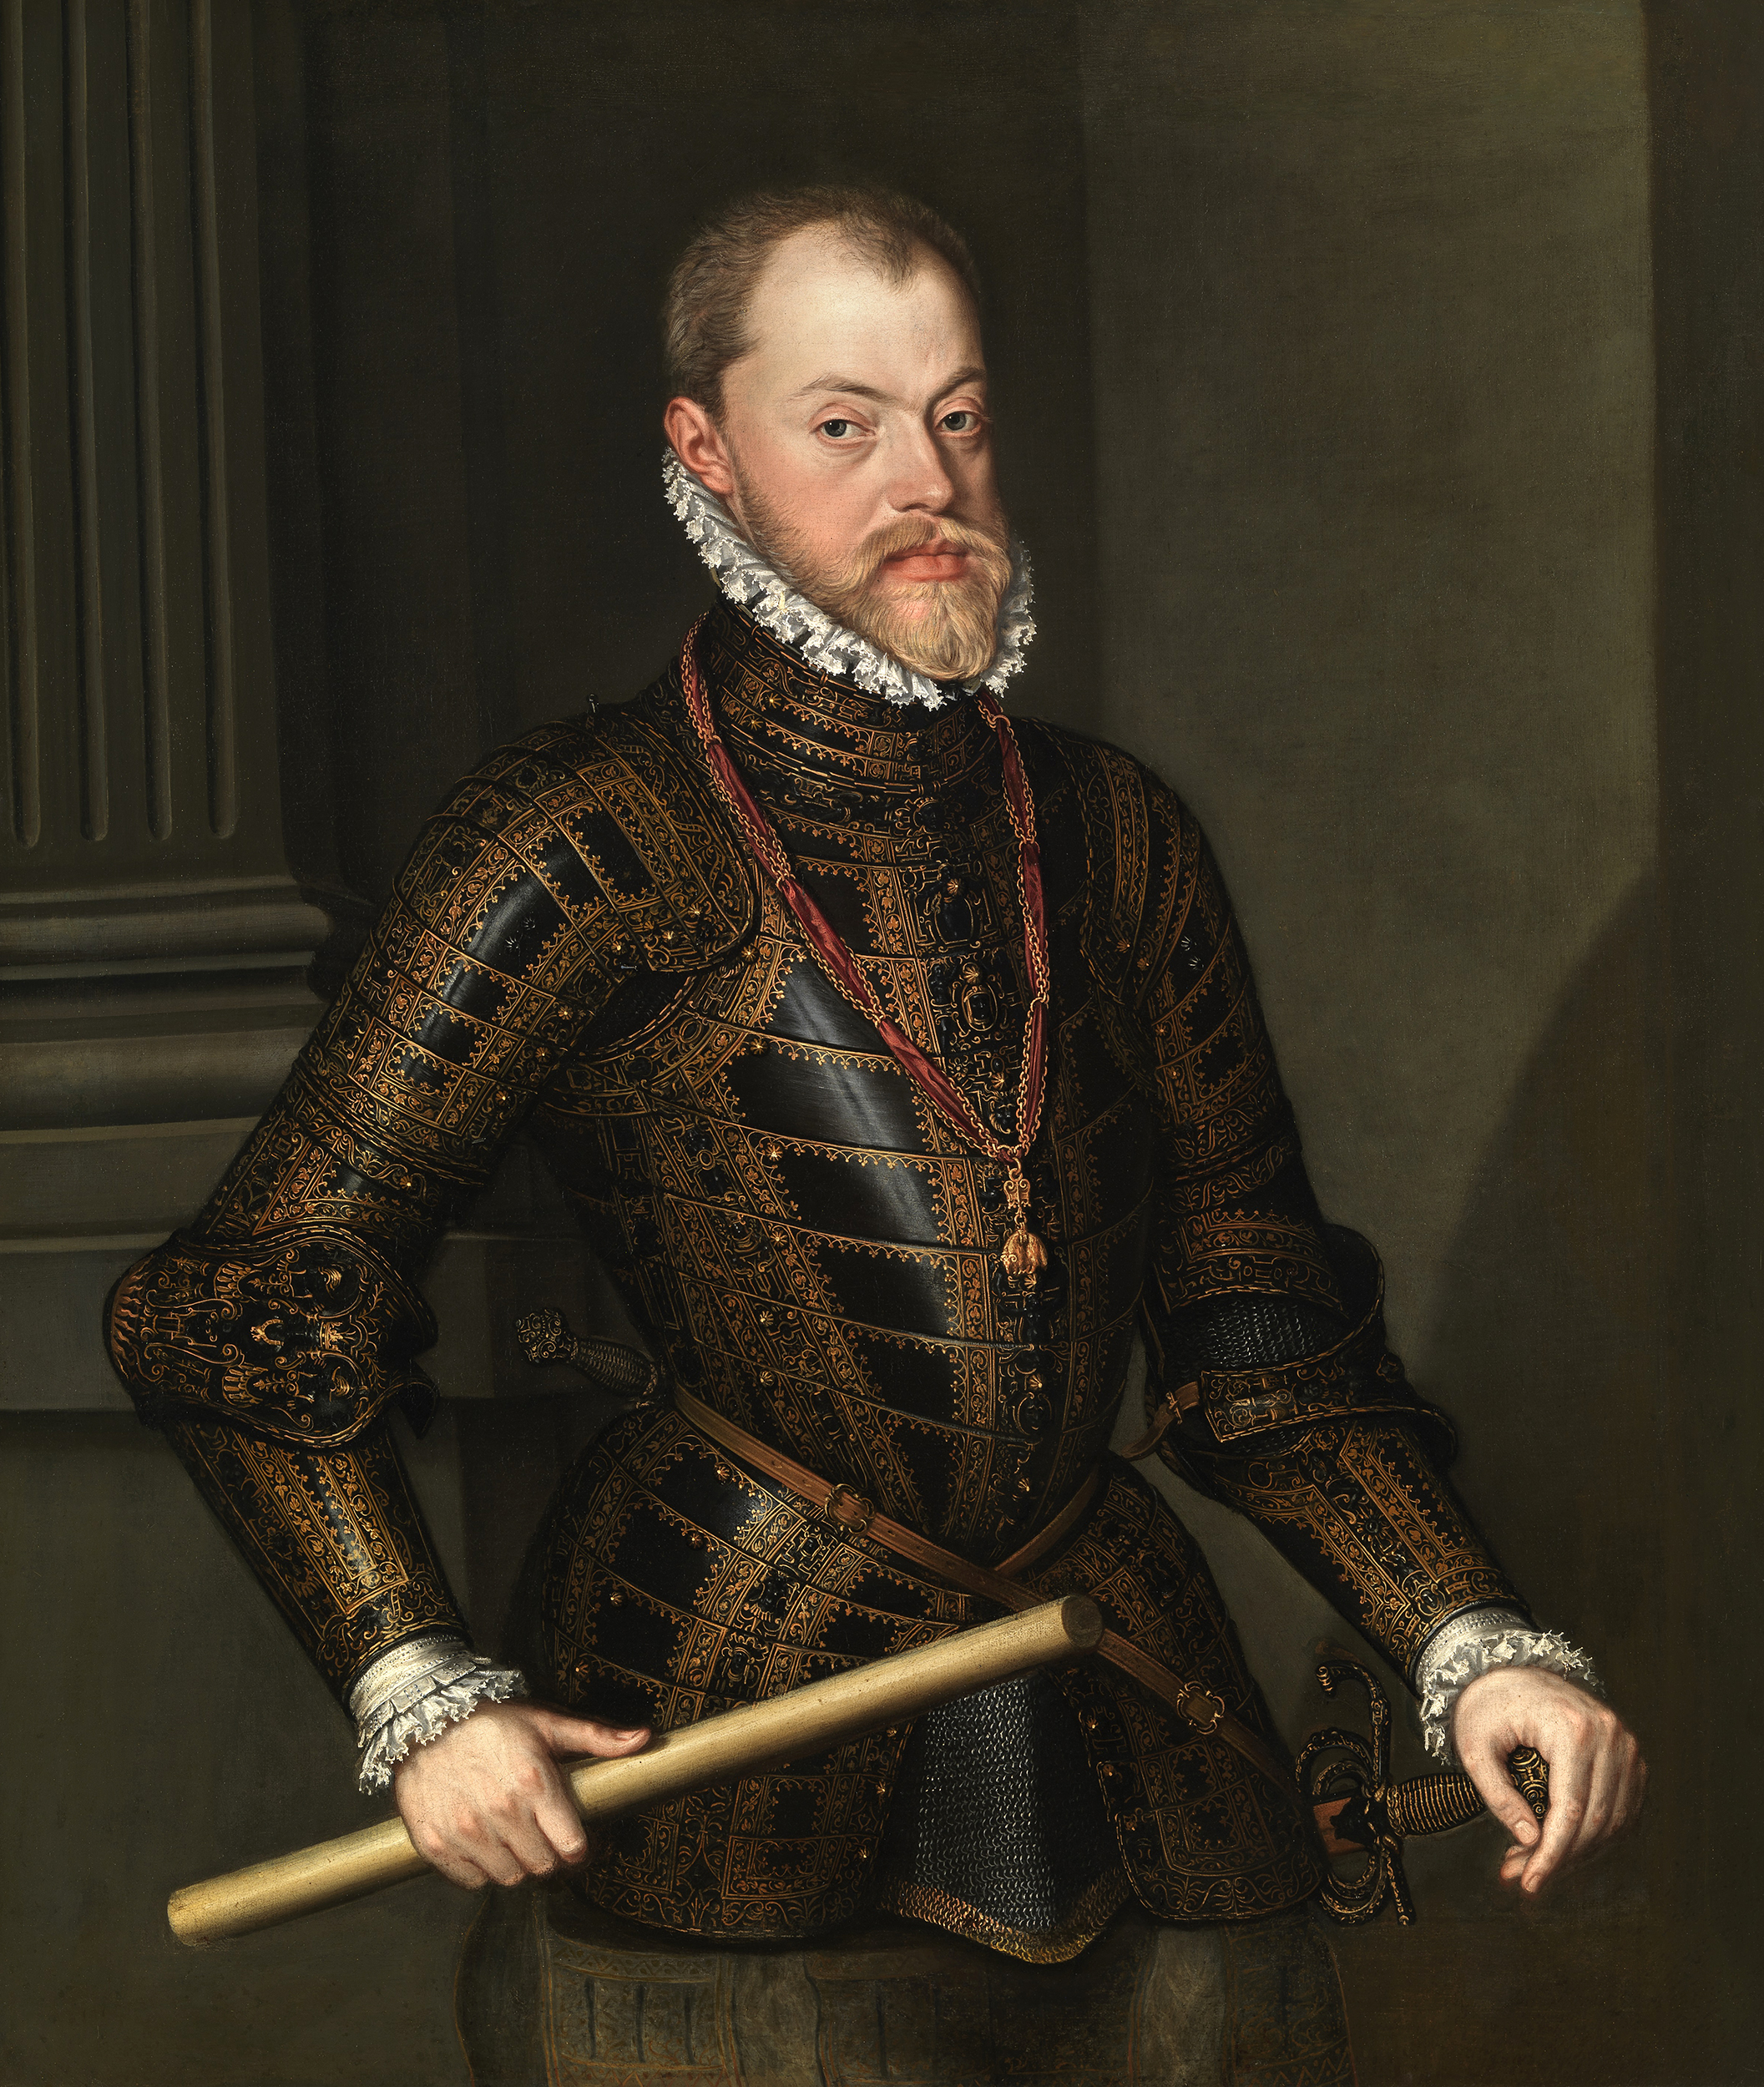 Portrait of Philip II (1527-1598), King of Spain (1556), King of Naples (1554), King of England (with Mary I) from 1554 to 1558, King of Portugal (1581), Lord of the Provinces of the Netherlands (1555), Duke of Milan (1540), Prince of Asturias (1528-1556), 1570 | Portraits of Kings